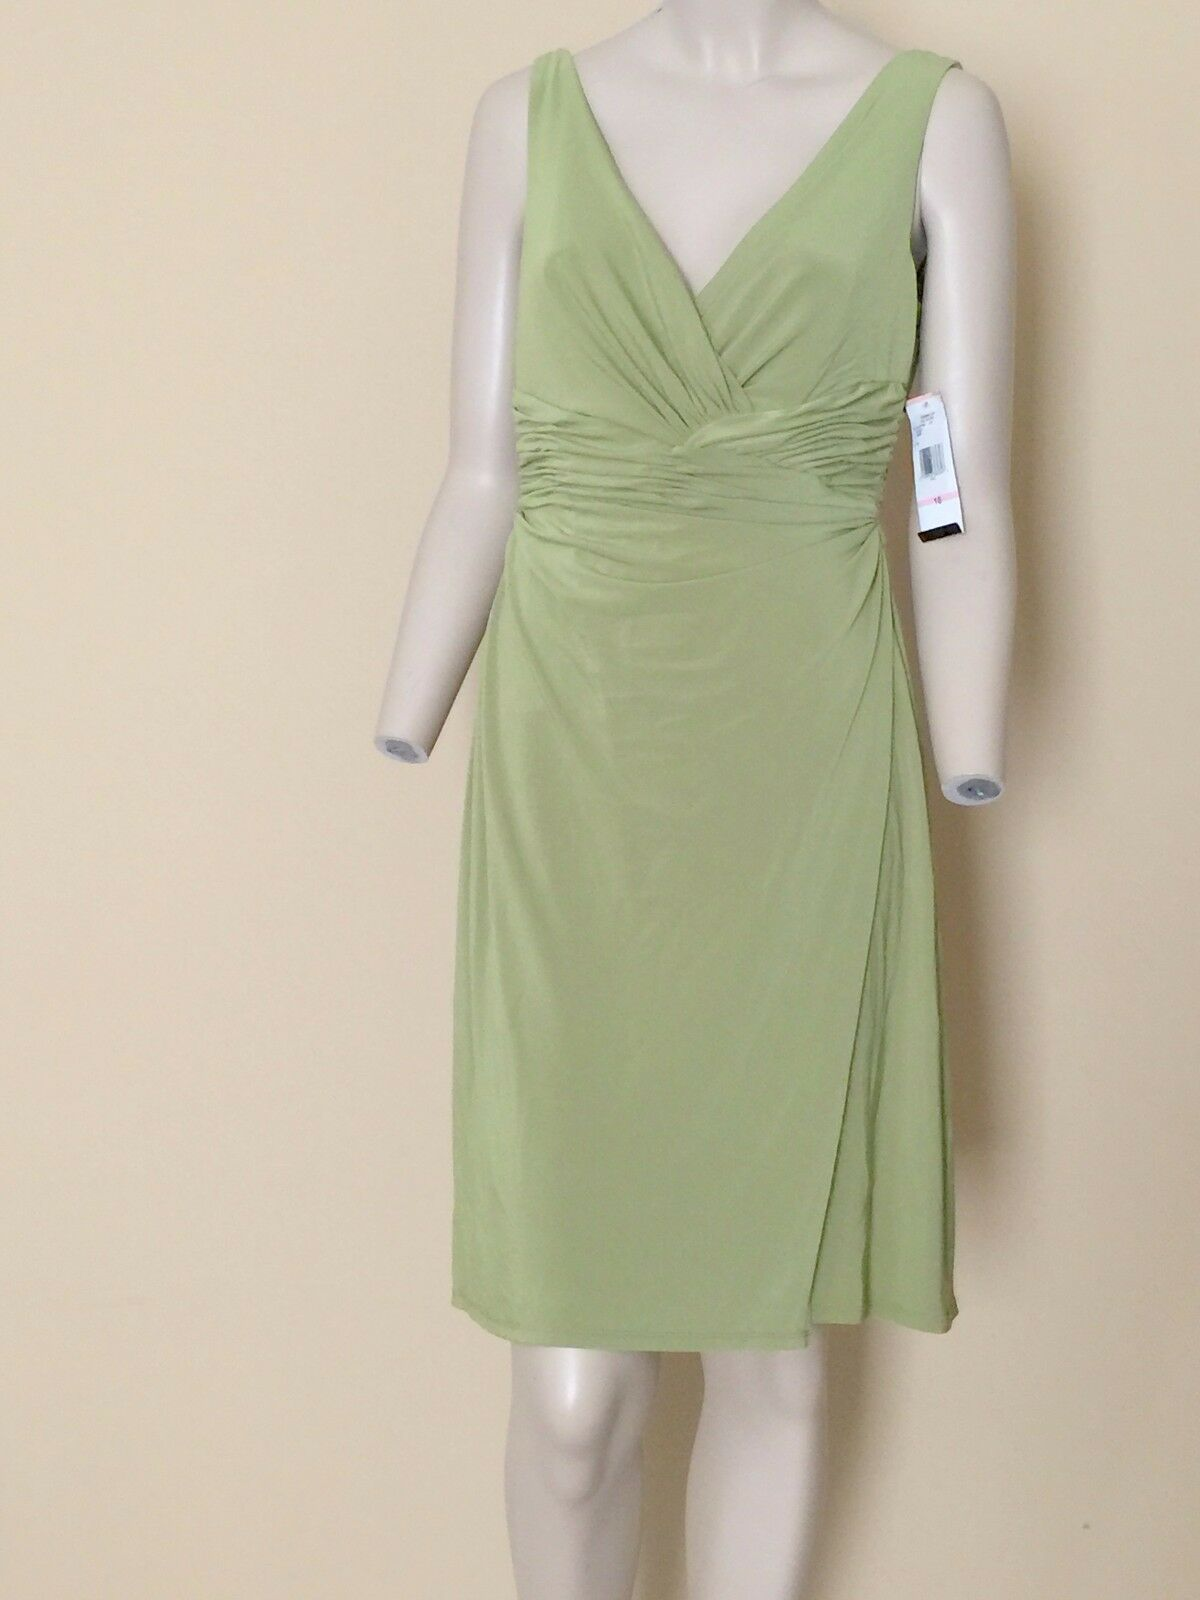 Jones New York Dress Eucalyptus Grün Sleeveless Dress 10